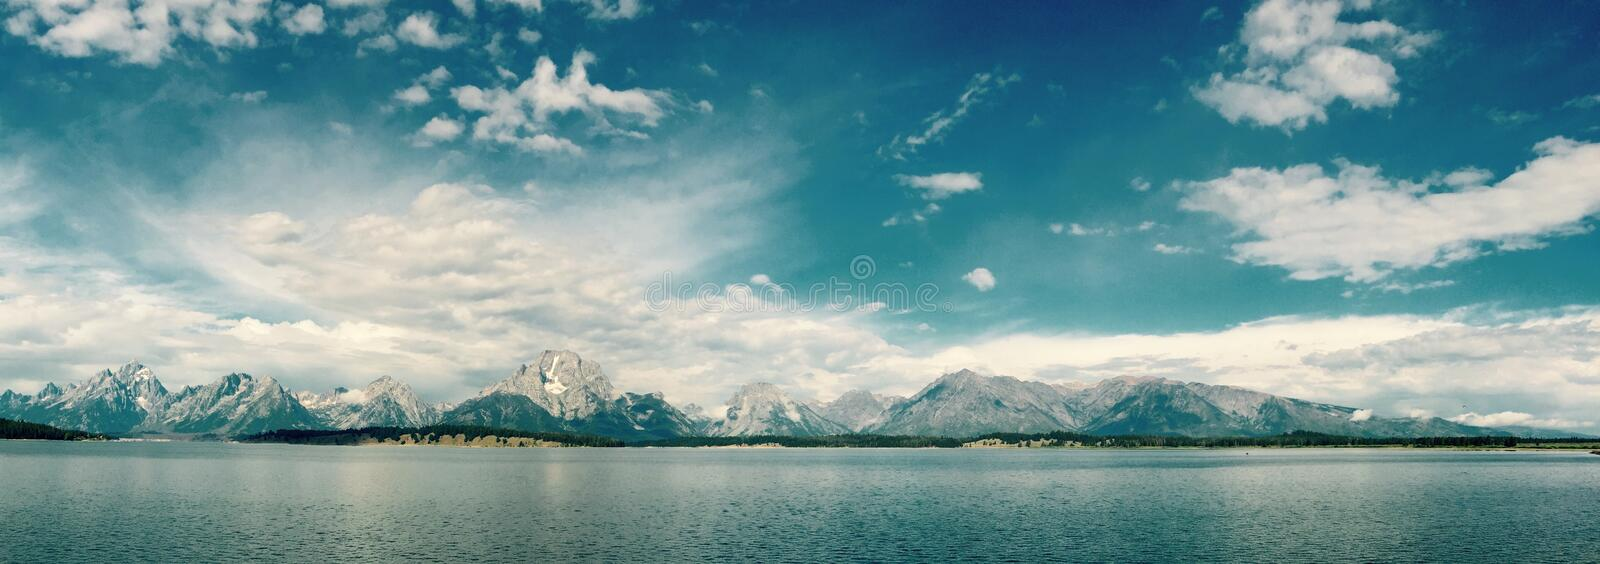 Panorama Of Snow Capped Peaks On Coastline Free Public Domain Cc0 Image